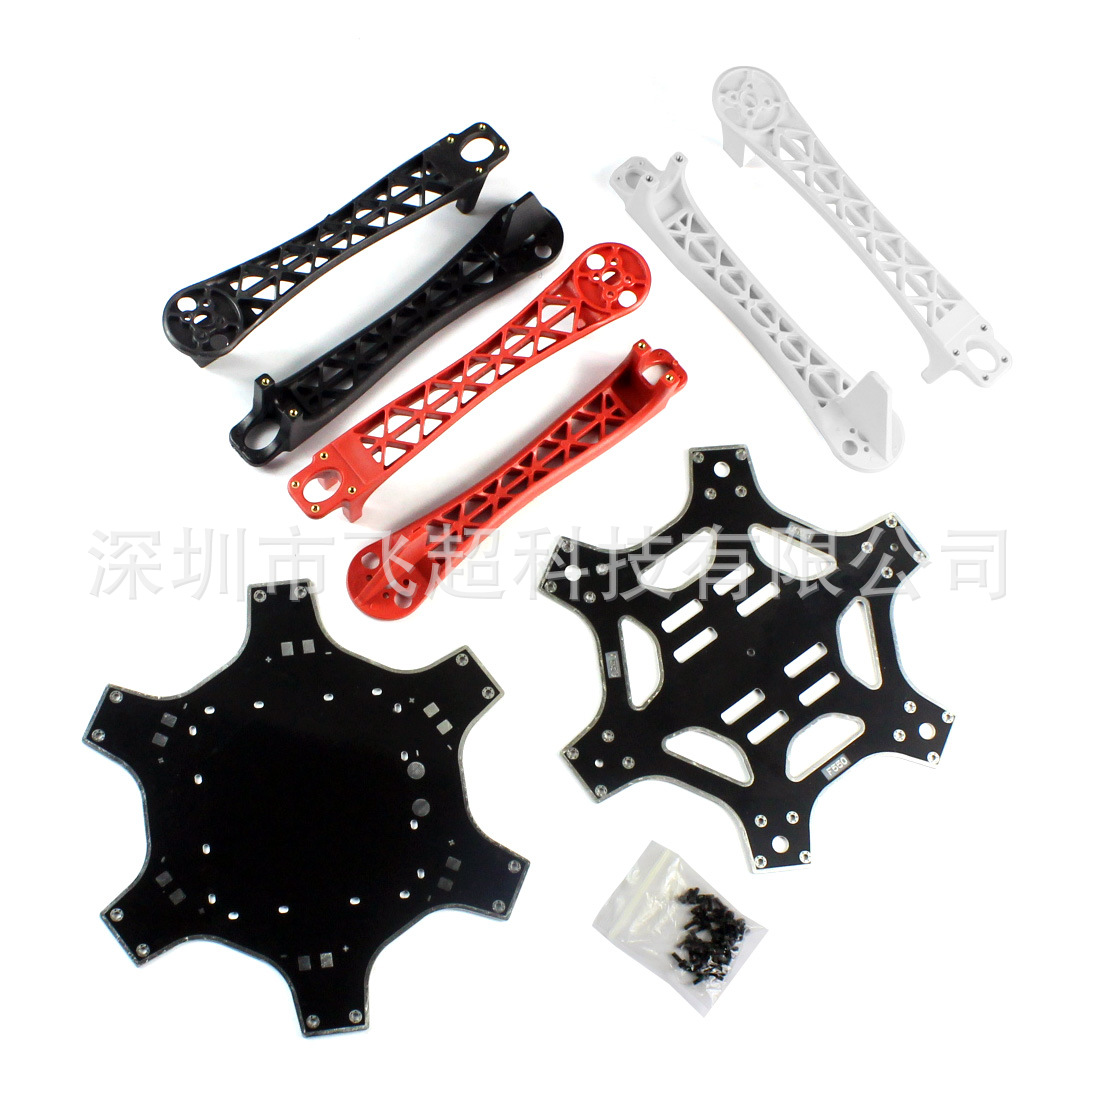 Unmanned Aerial Vehicle F550 Six-Axis Aircraft Parts Set 30A Electrical Adjustment Excluded Remote Control/Battery/Charger